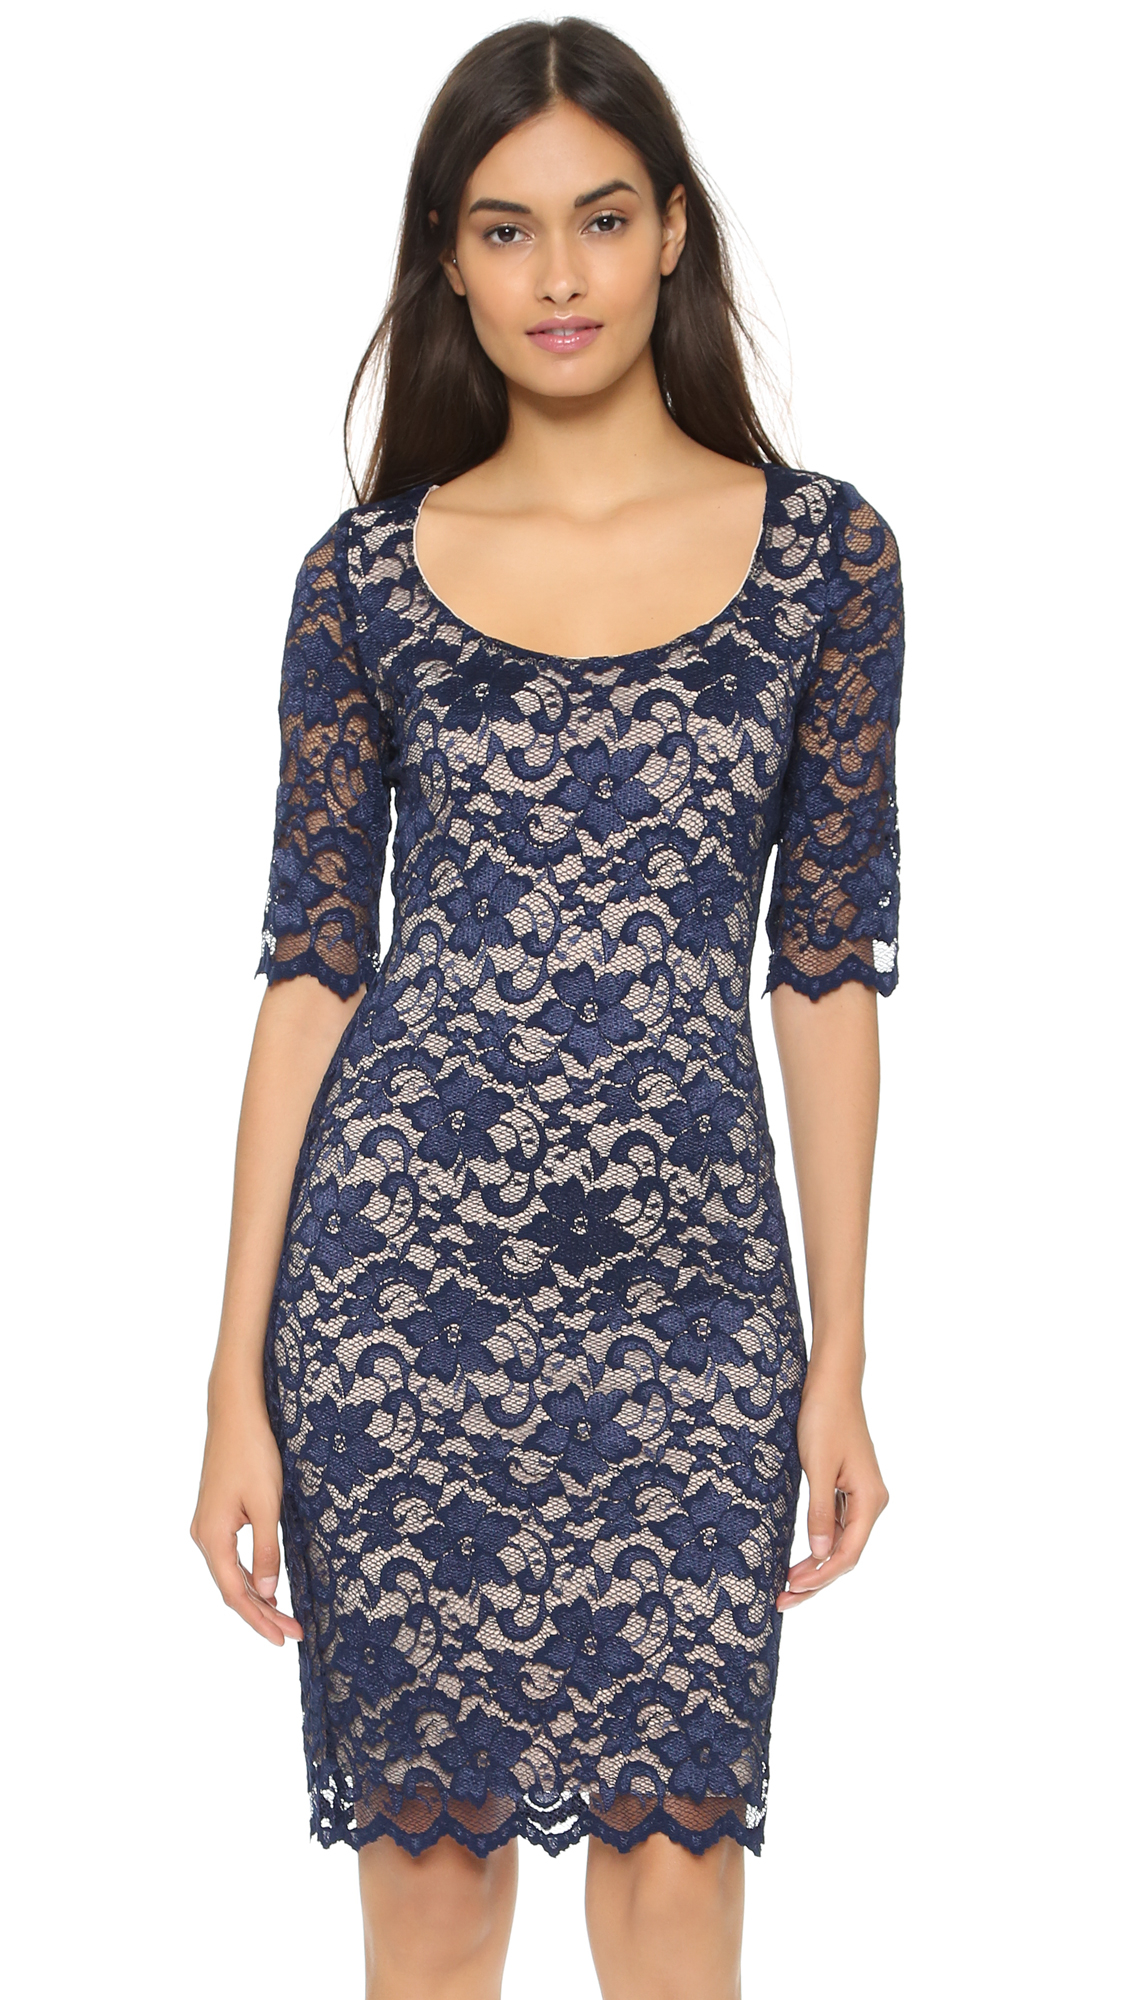 Badgley Mischka Belle Alexandra Dress - Navy in Blue - Lyst